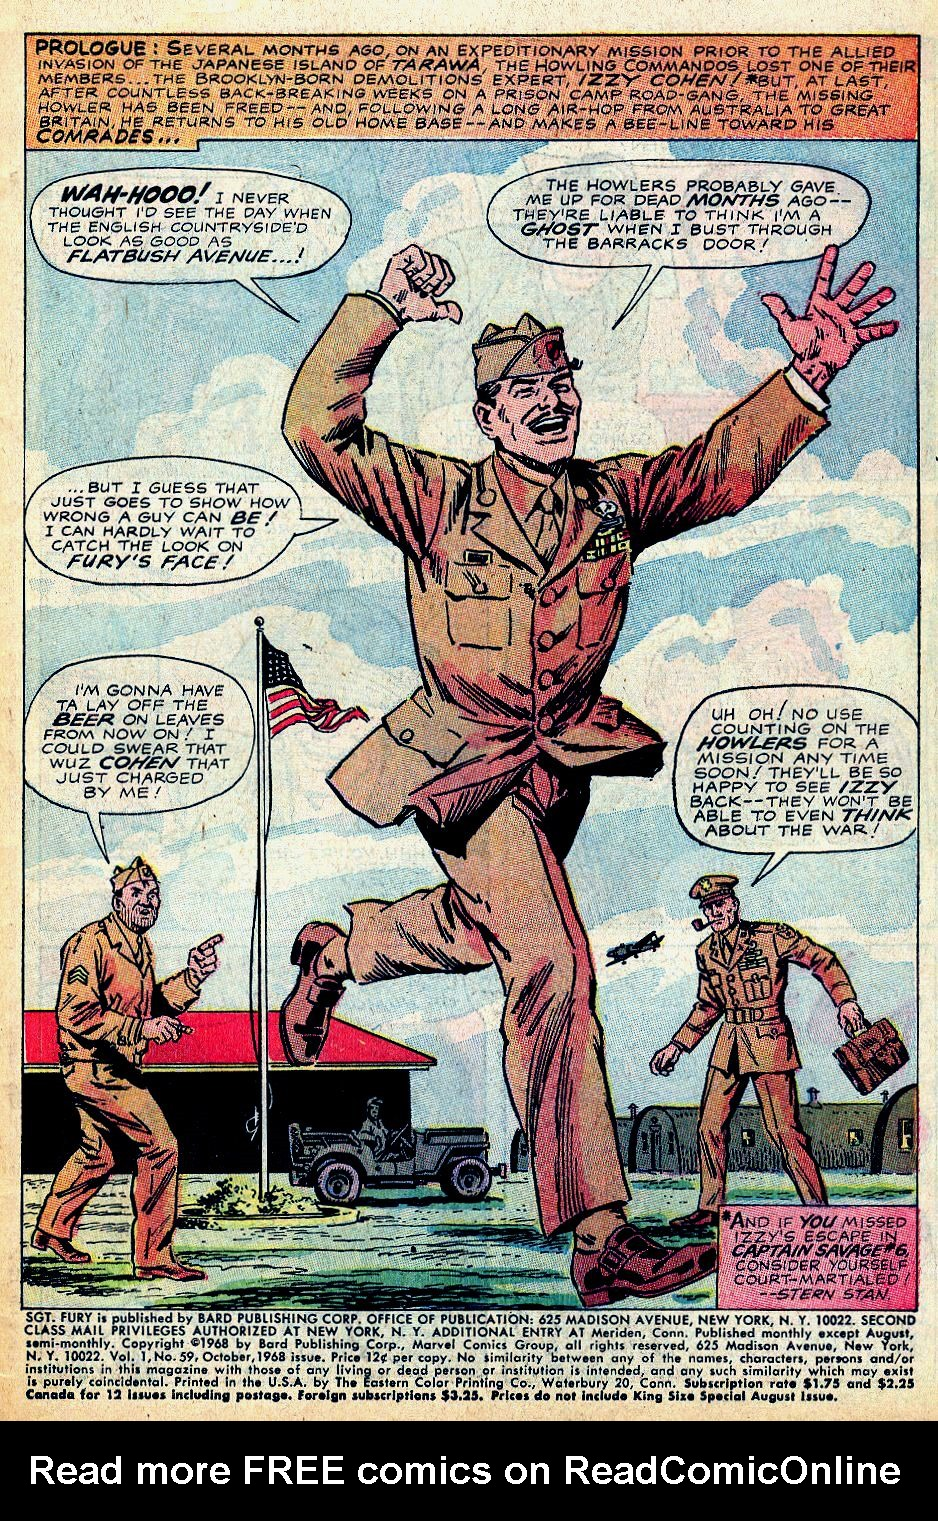 Read online Sgt. Fury comic -  Issue #59 - 3